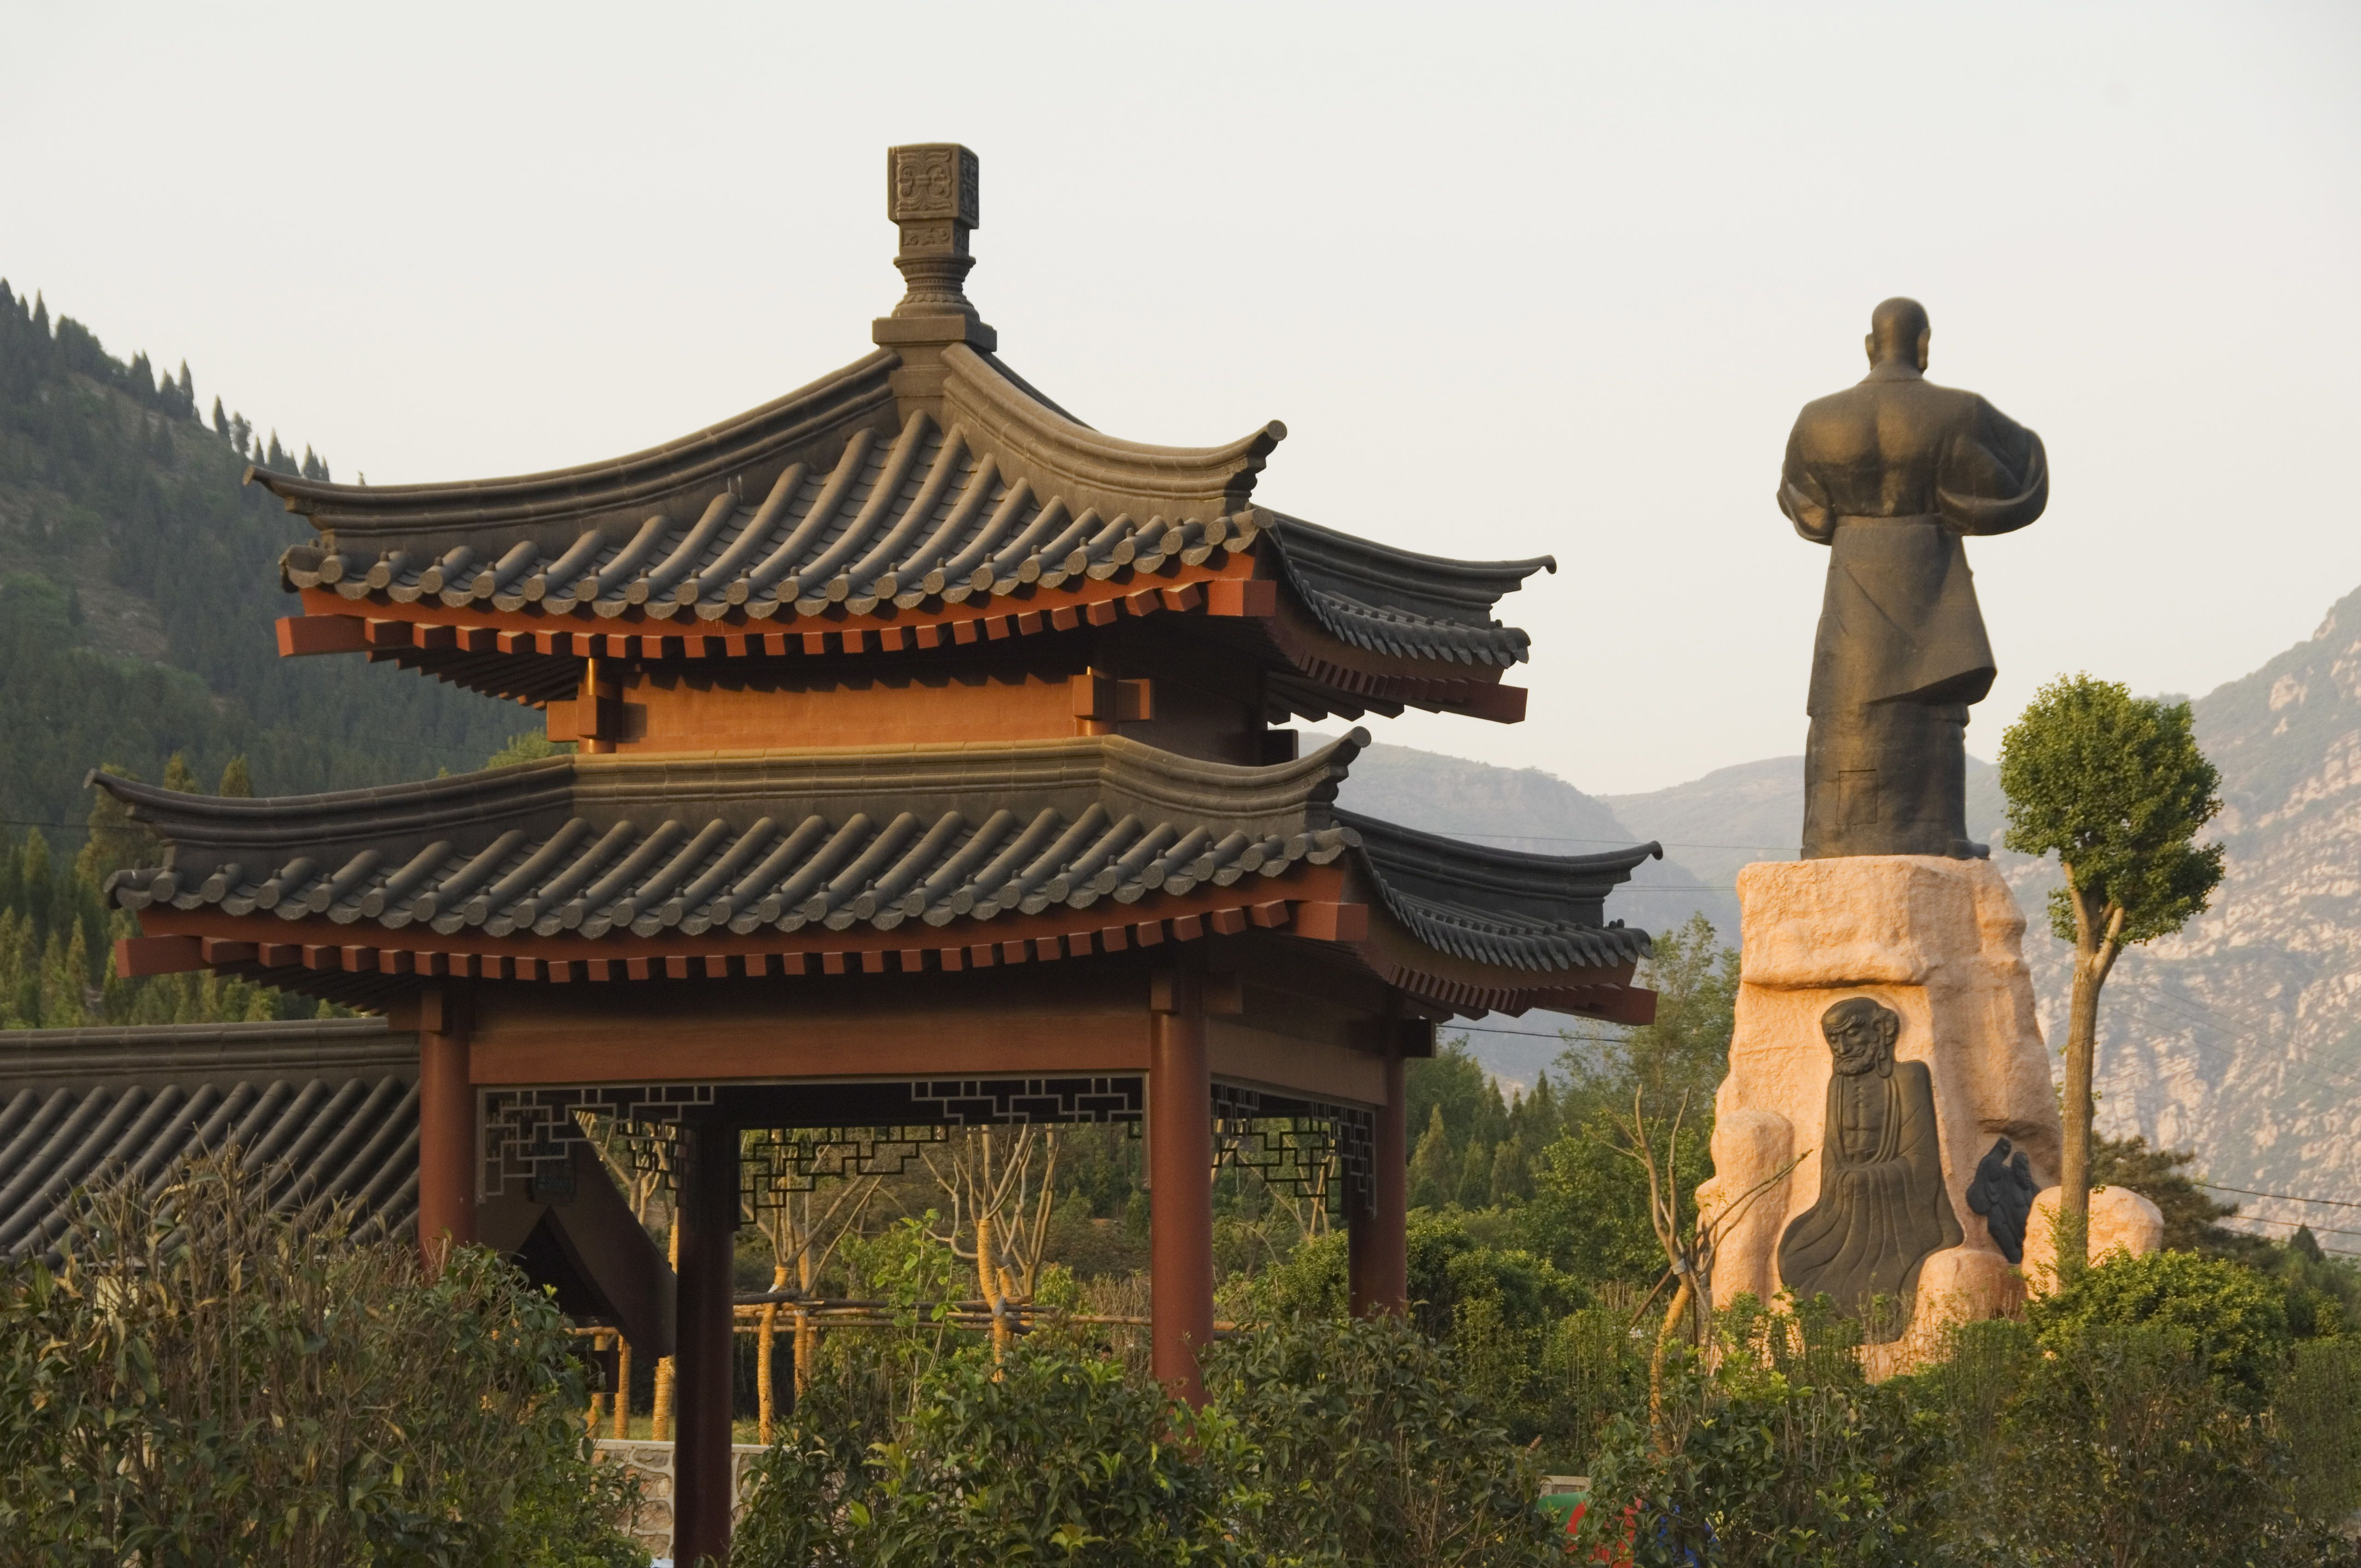 Visiting The Shaolin Temple